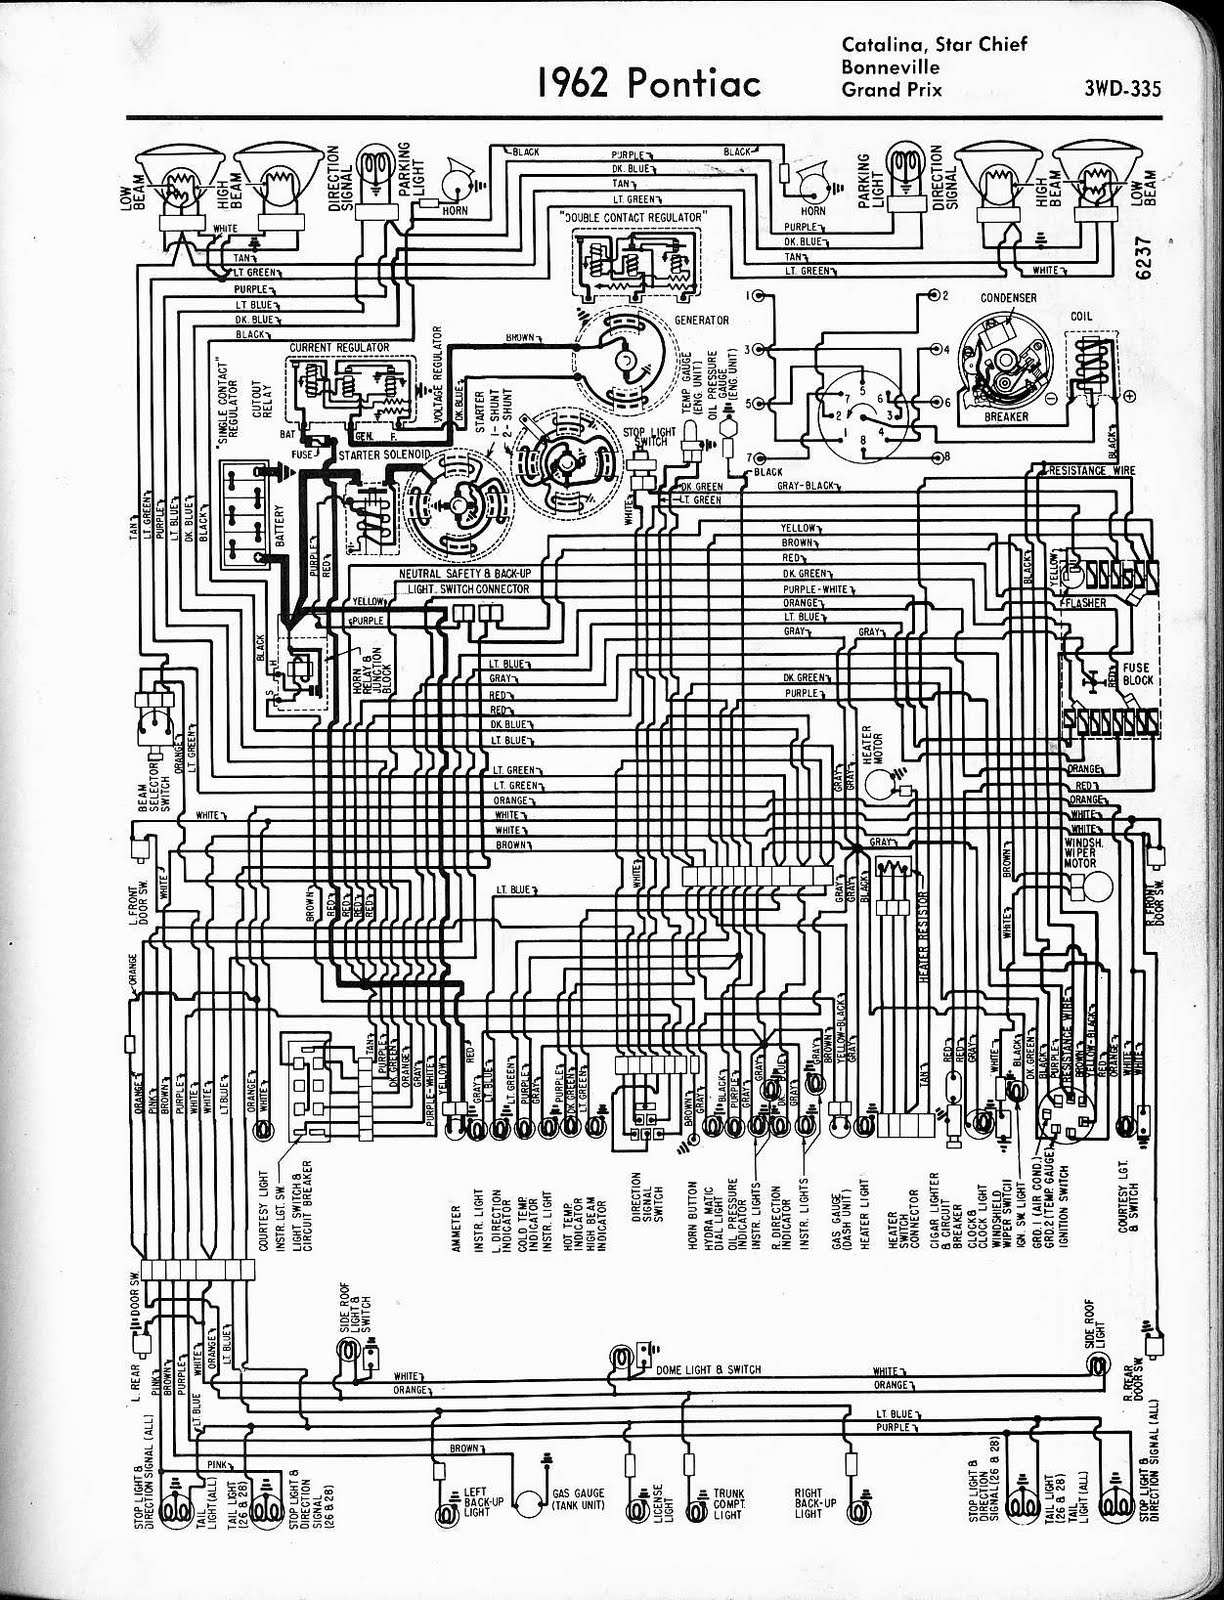 free auto wiring diagram 1962 pontiac catalina  star chief  bonneville  grand prix wiring 1962 ford galaxie fuse box 2013 Ford Explorer Fuse Diagram